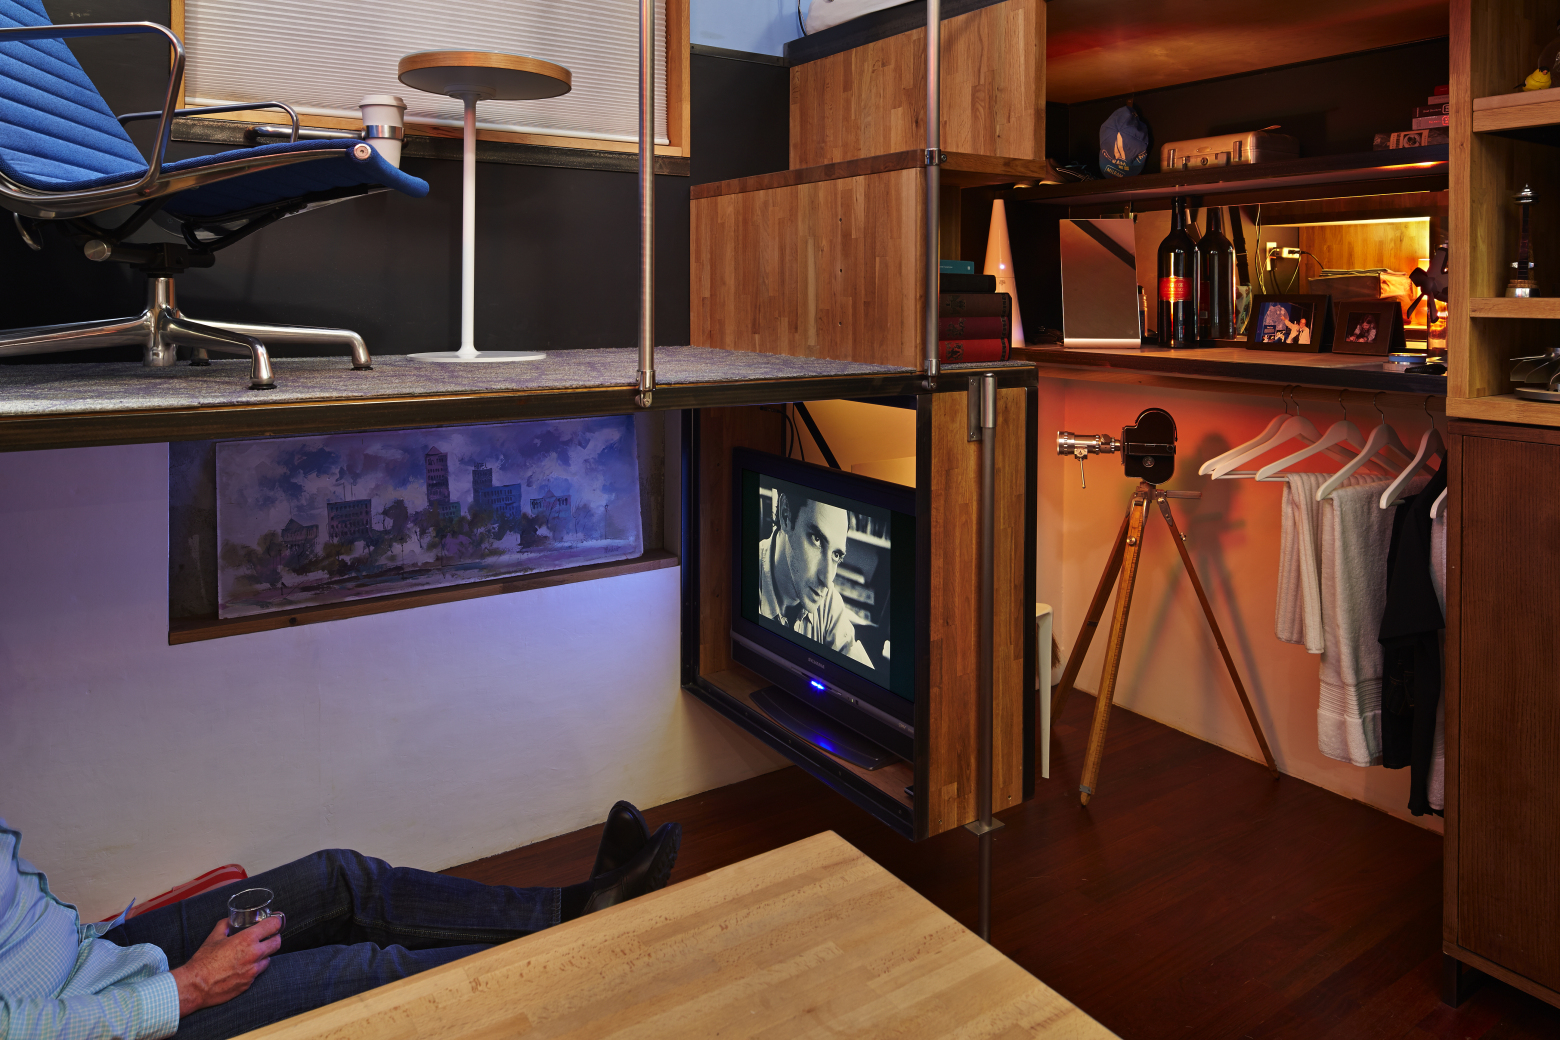 pico-dwelling tv lounge